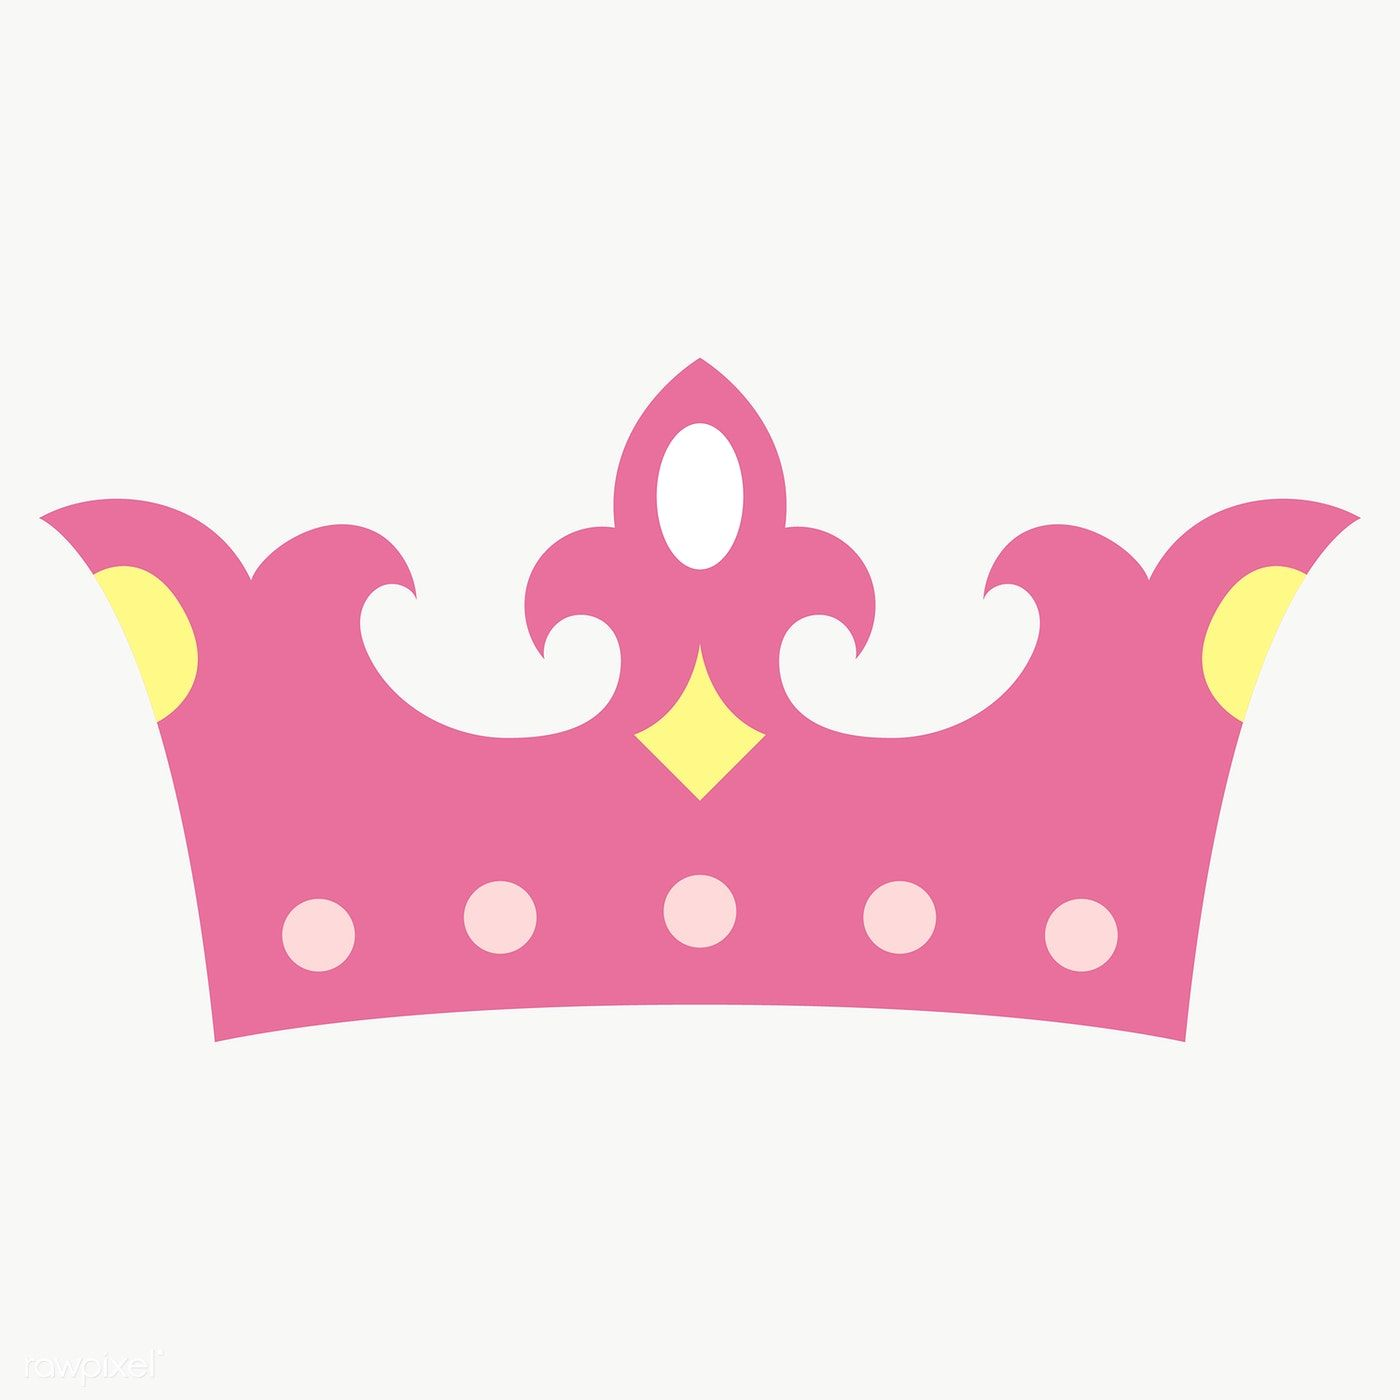 Pink Crown Design Element Transparent Png Free Image By Rawpixel Com Chayanit Crown Design Pink Crown Crown Png